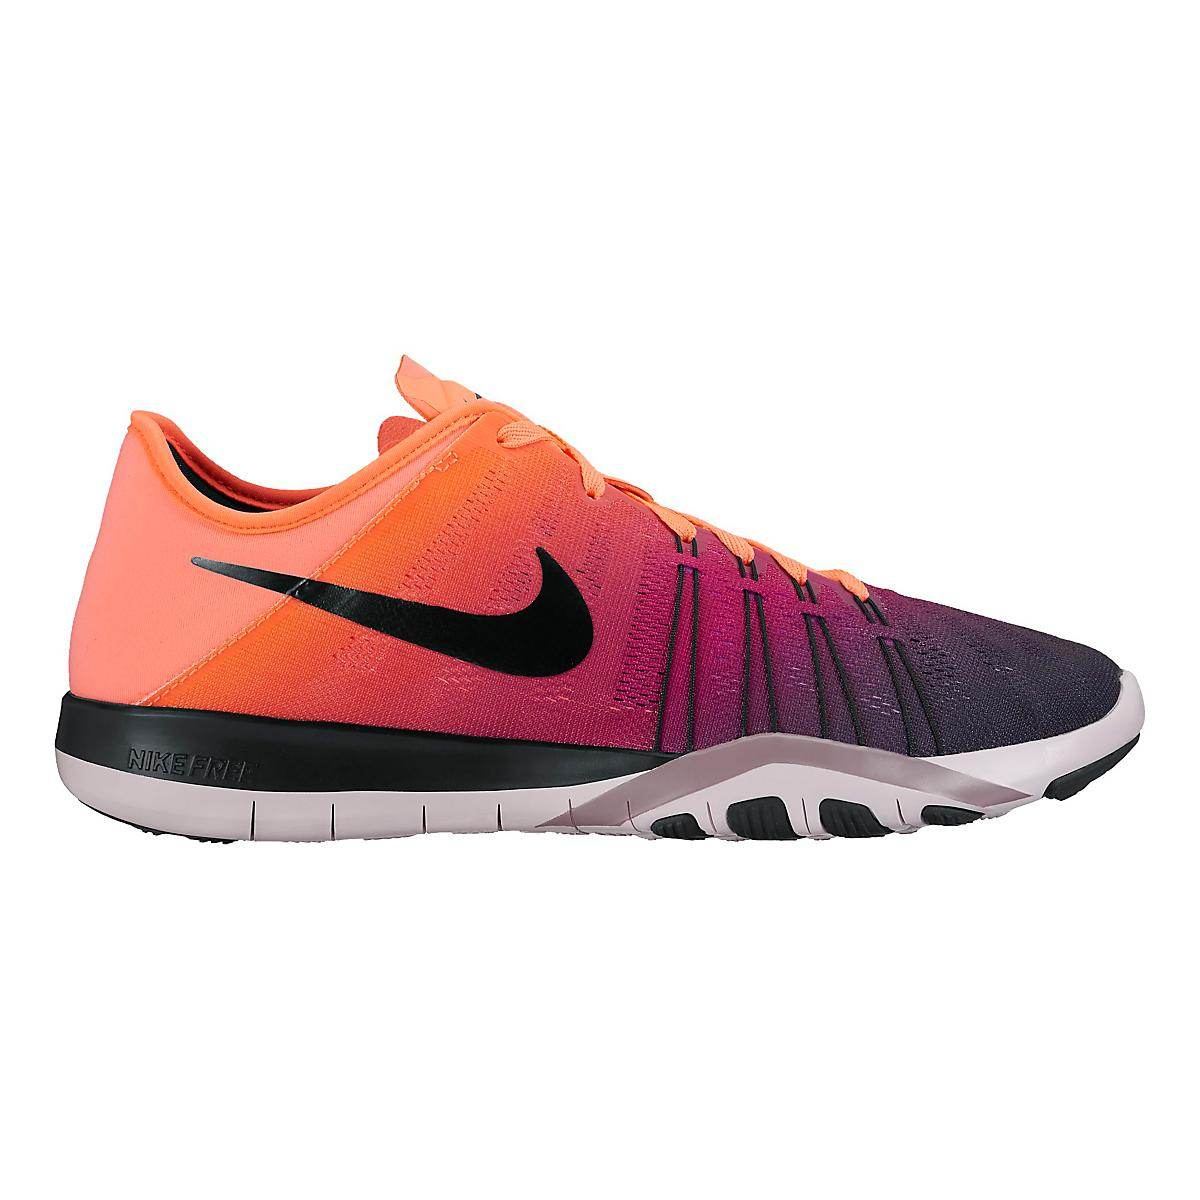 83c7b2863eecc Womens Nike Free TR 6 Spectrum Cross Training Shoe at Road Runner Sports